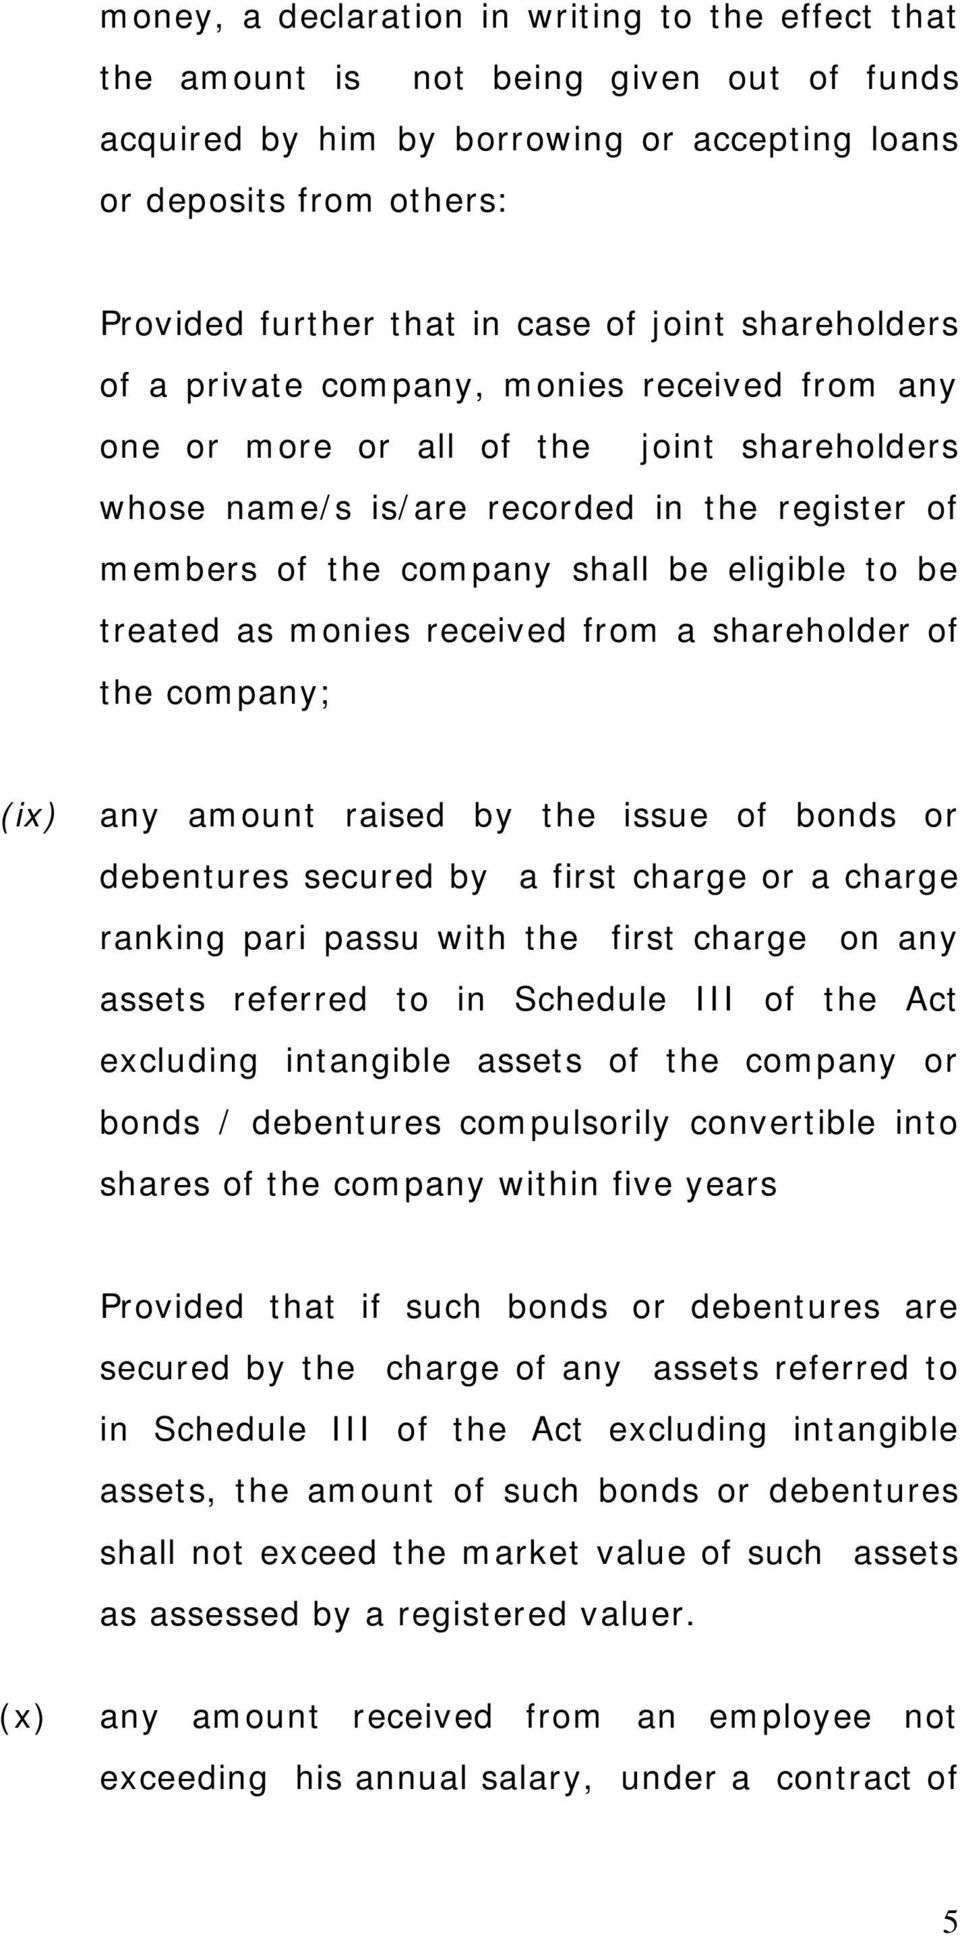 to be treated as monies received from a shareholder of the company; (ix) any amount raised by the issue of bonds or debentures secured by a first charge or a charge ranking pari passu with the first